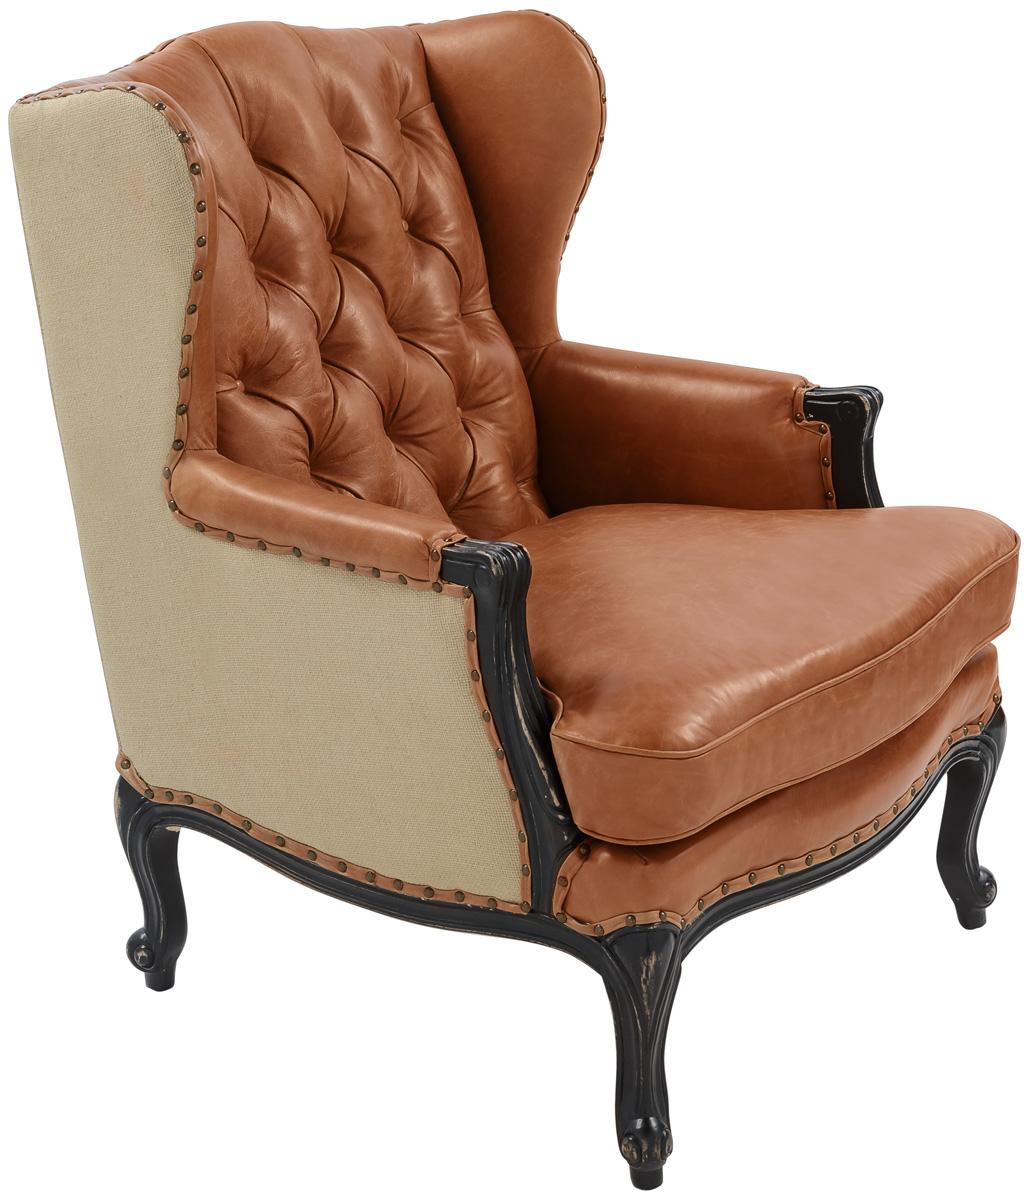 Ashland Leather Armchair Knt5020a Accent Chairs Color Chair Light Brown